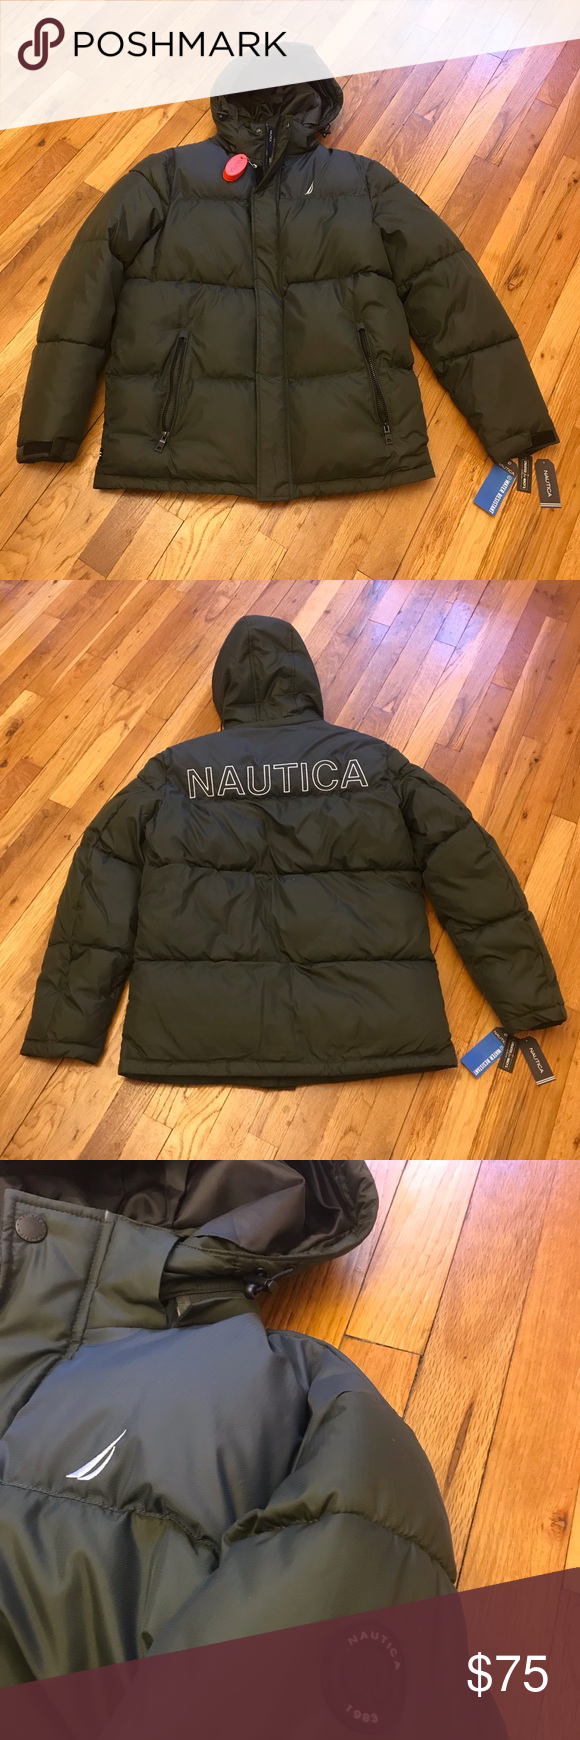 Nautica Polyester Puffer Jacket Hooded Olive Nwt Description Nautica Man S Jacket 100 Polyester Water Resistant With Innov Jackets Puffer Jackets Hand Warmers [ 1740 x 580 Pixel ]